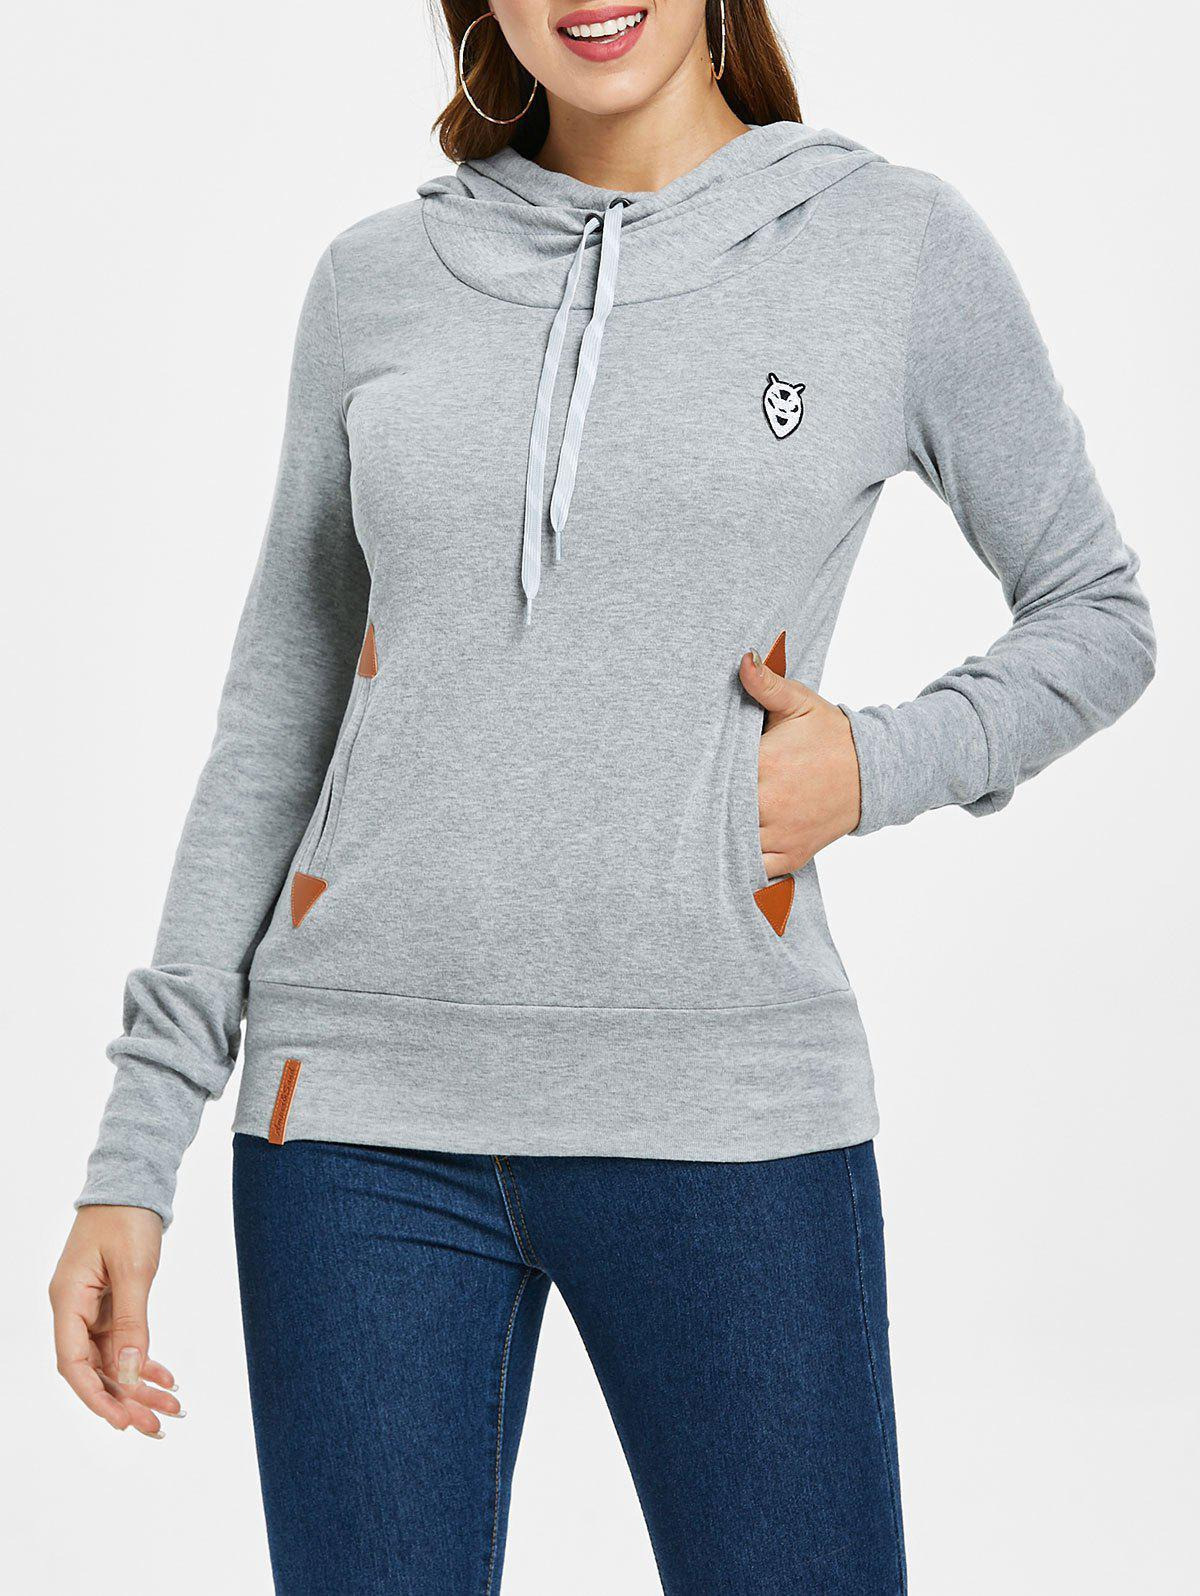 Embroidered Drawstring Pocket Design Hoodie - LIGHT GRAY M